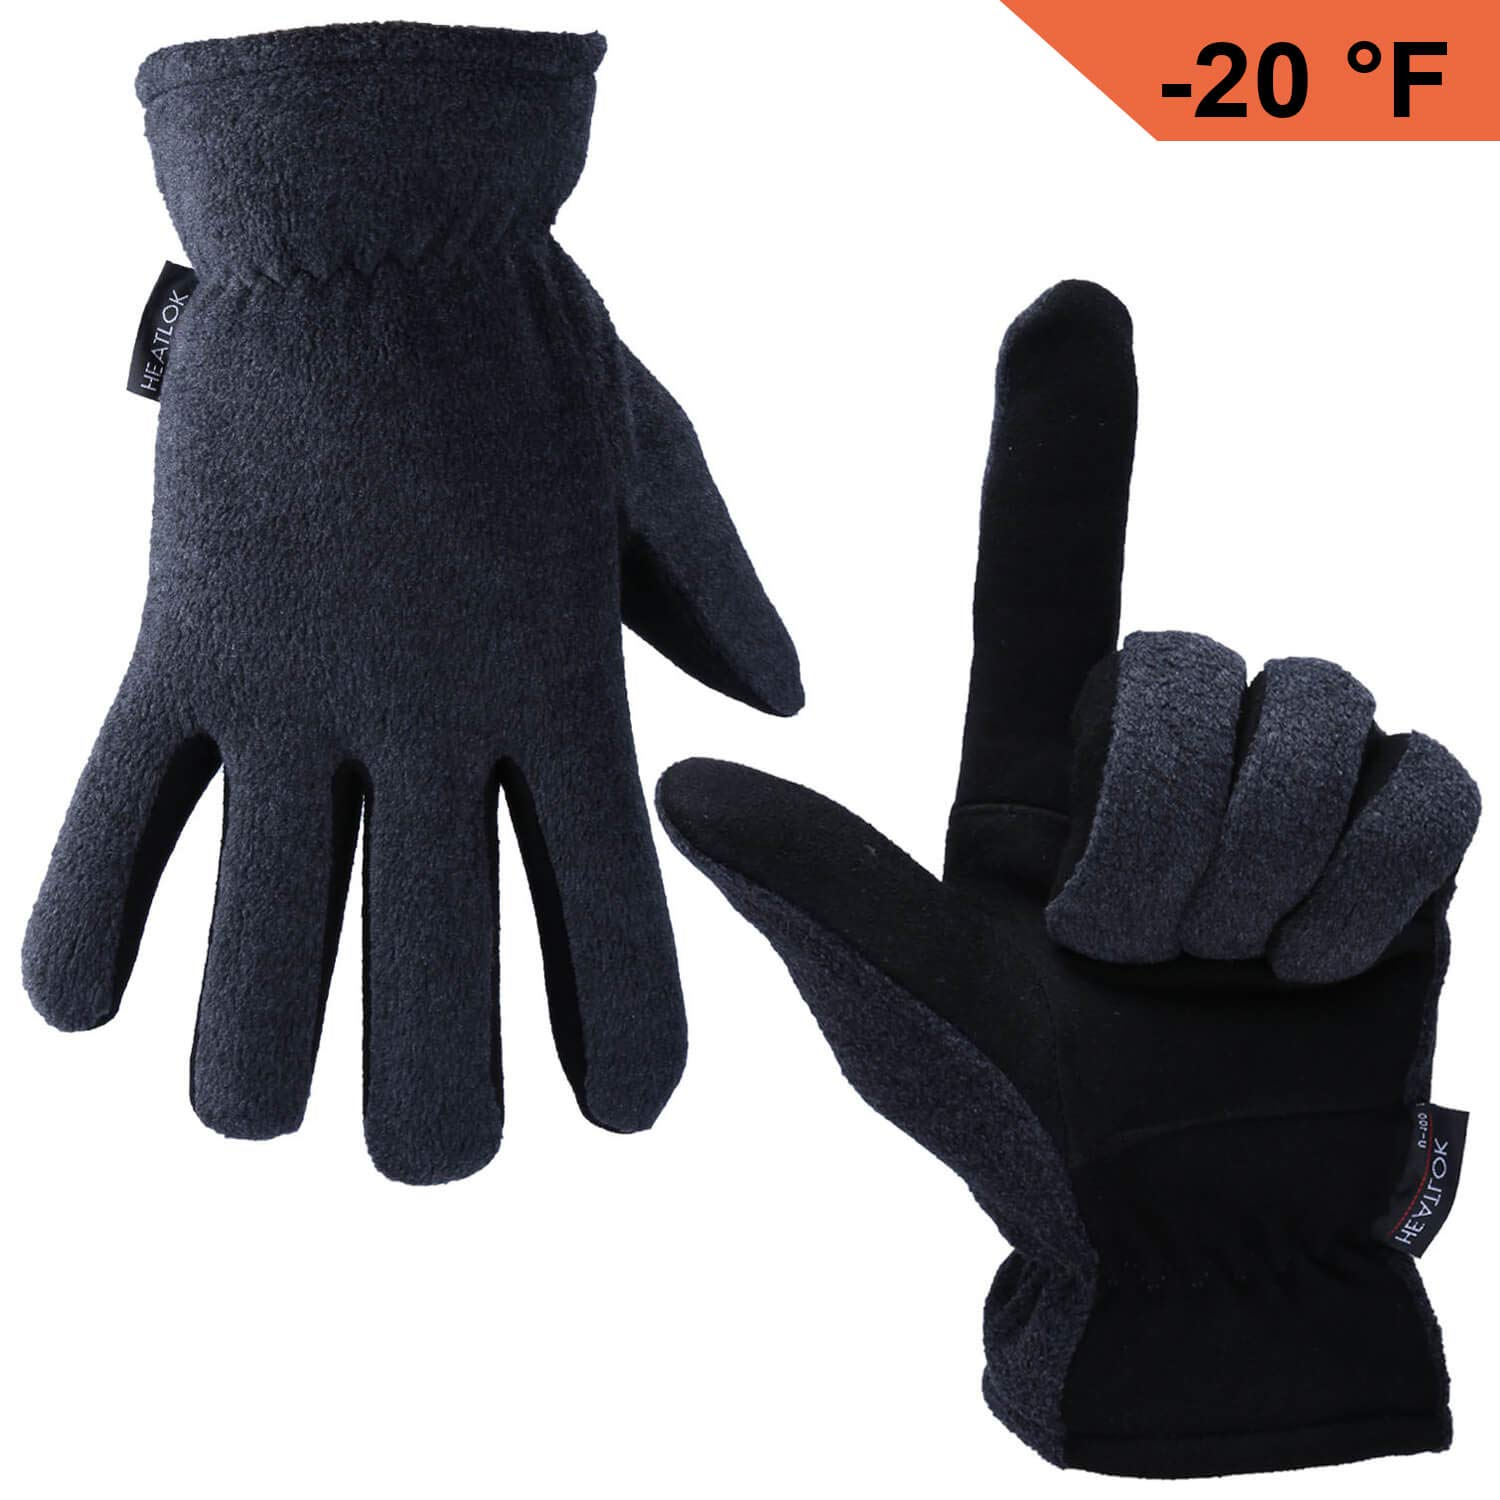 OZERO Deerskin Suede Leather Palm and Polar Fleece Back with Heatlok Insulated Cotton Layer Thermal Gloves, Small - Grey-Black